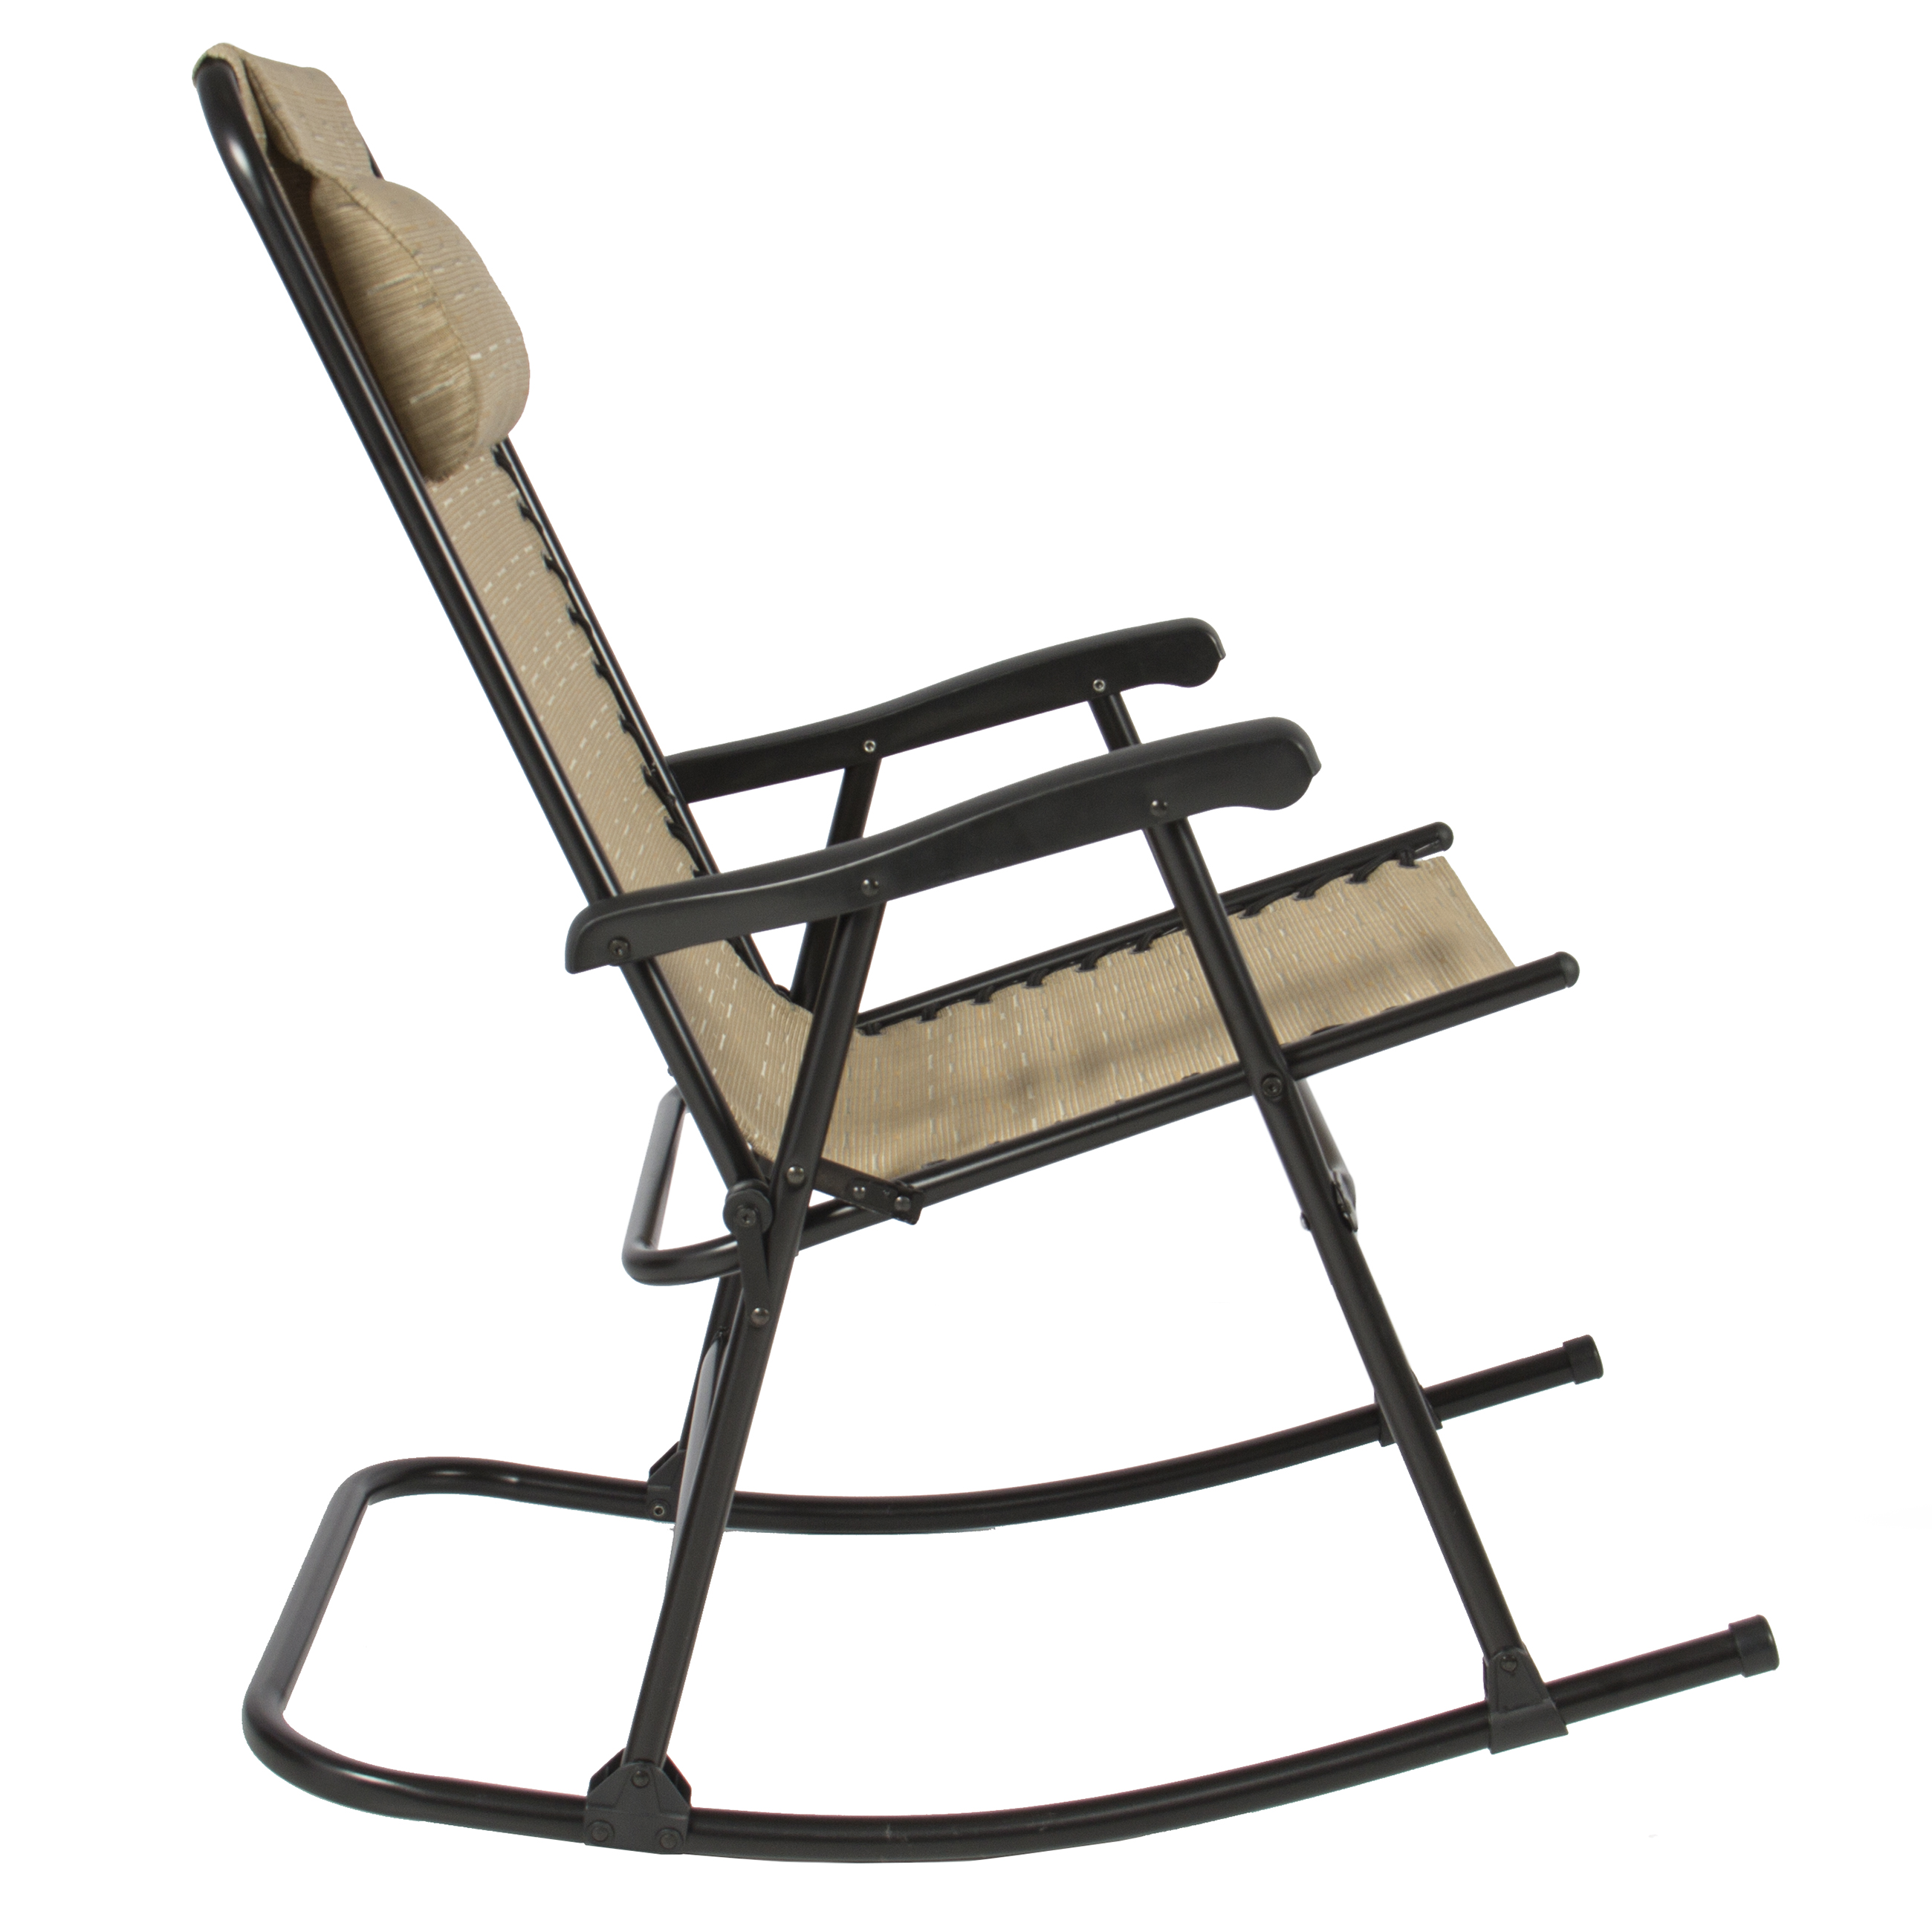 Outdoor furniture all chairs rocking chairs jefferson outdoor rocking - Best Choice Products Folding Rocking Chair Foldable Rocker Outdoor Patio Furniture Beige Walmartcom